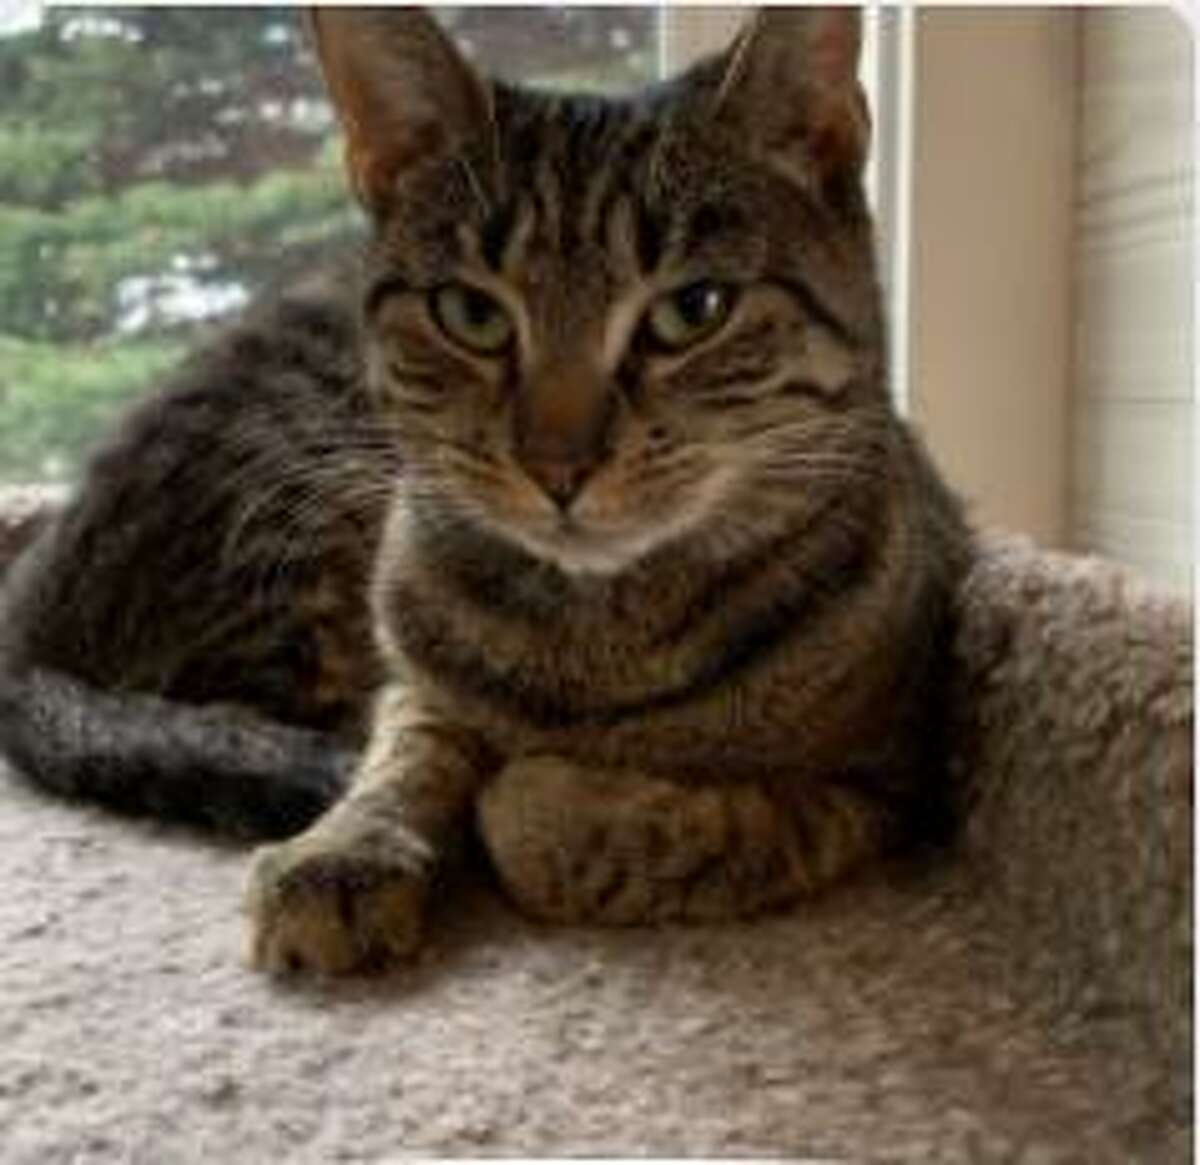 Patsy, a tabby cat, has cared for her kittens, and is now looking for a family of her own. She is available to be met by calling the ROAR Donofrio Family Animal Shelter, which is located at 45 South Street, in Ridgefield, at (203) 438-0158, for an appointment.